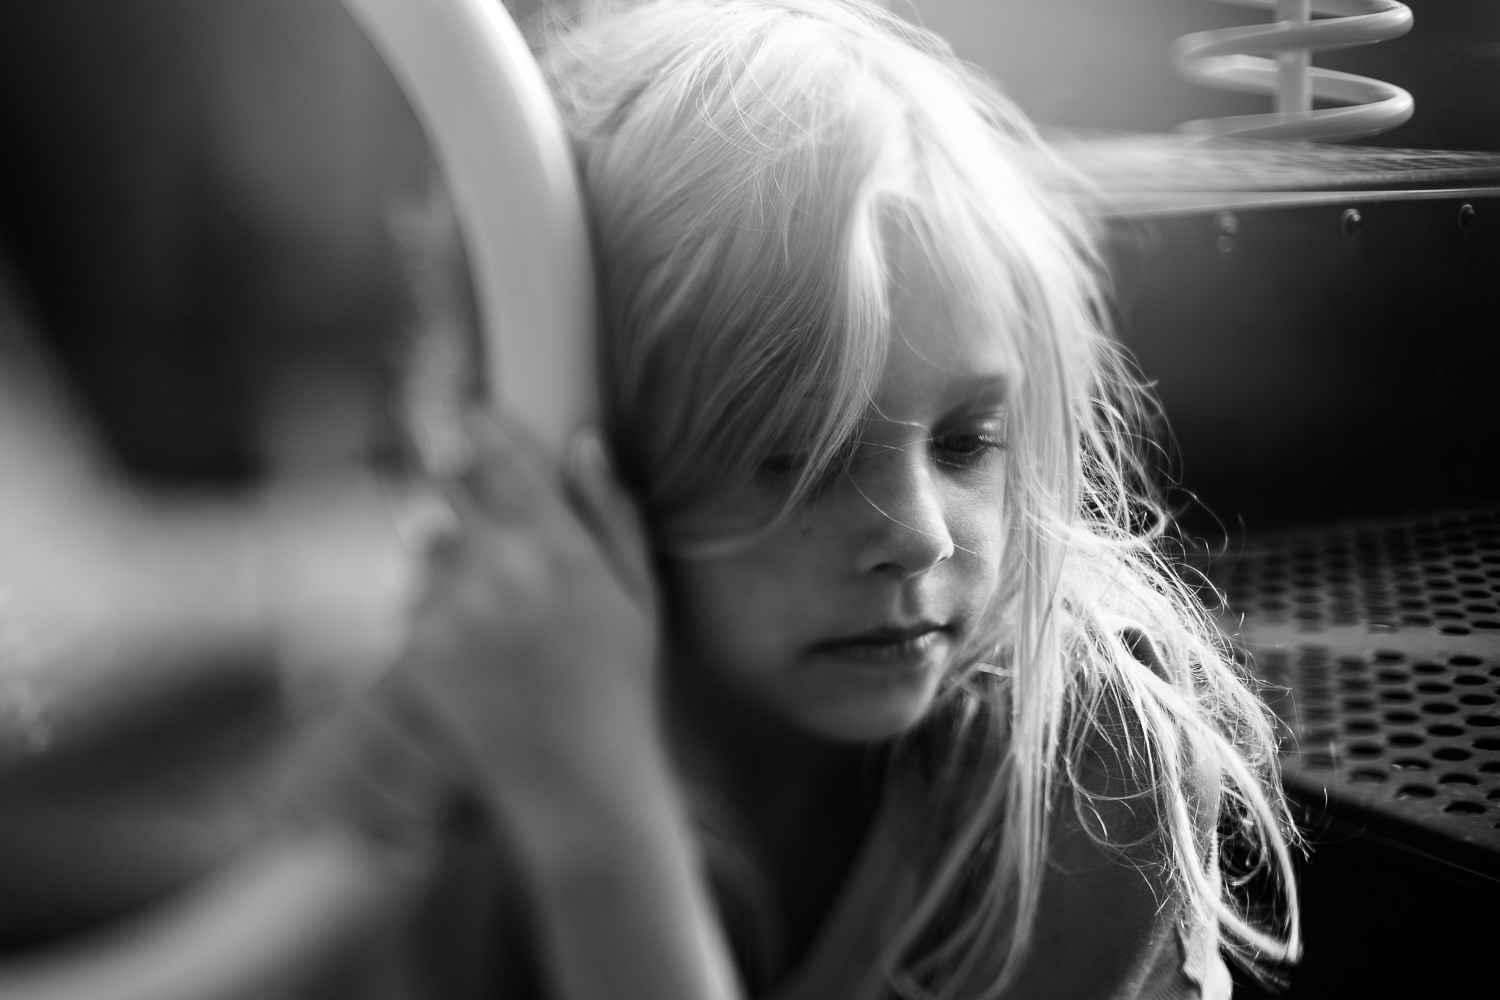 black and white artistic photo of girl on playground looking melancholy